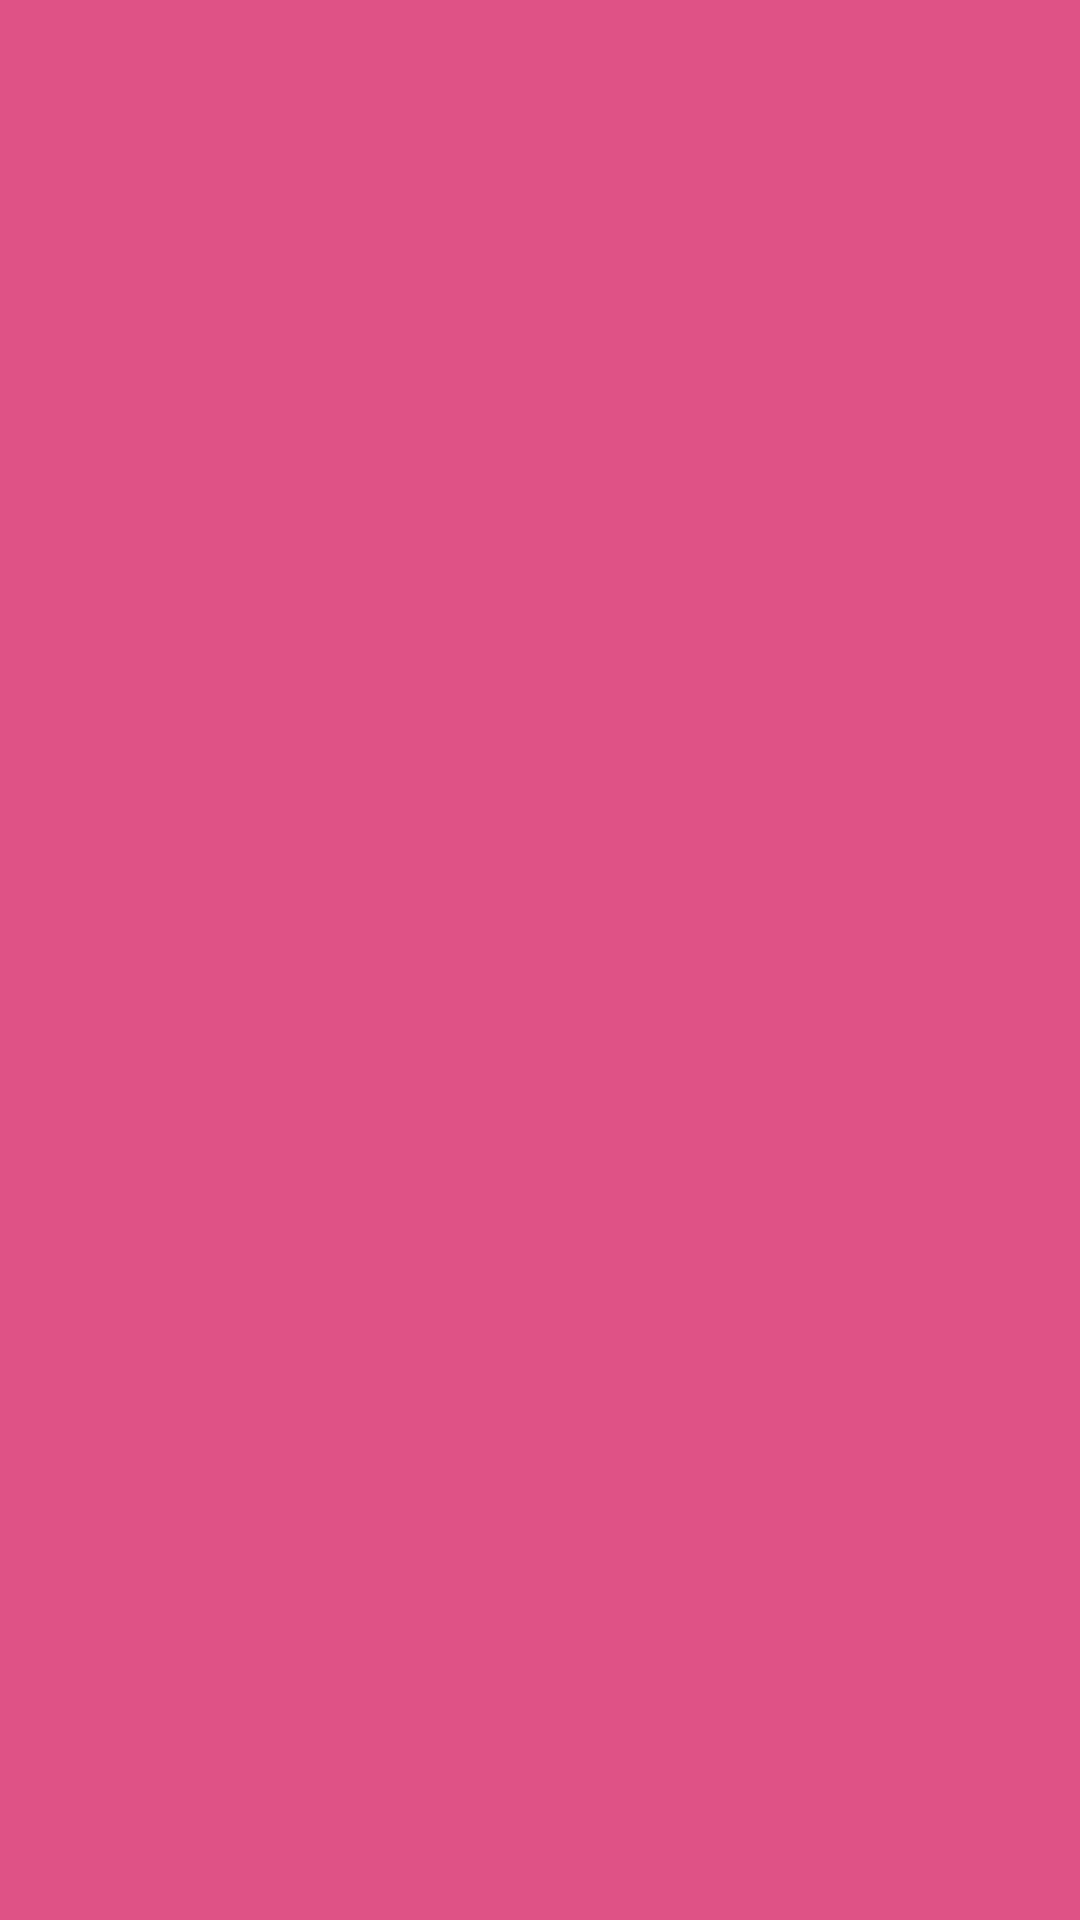 1080x1920 Fandango Pink Solid Color Background